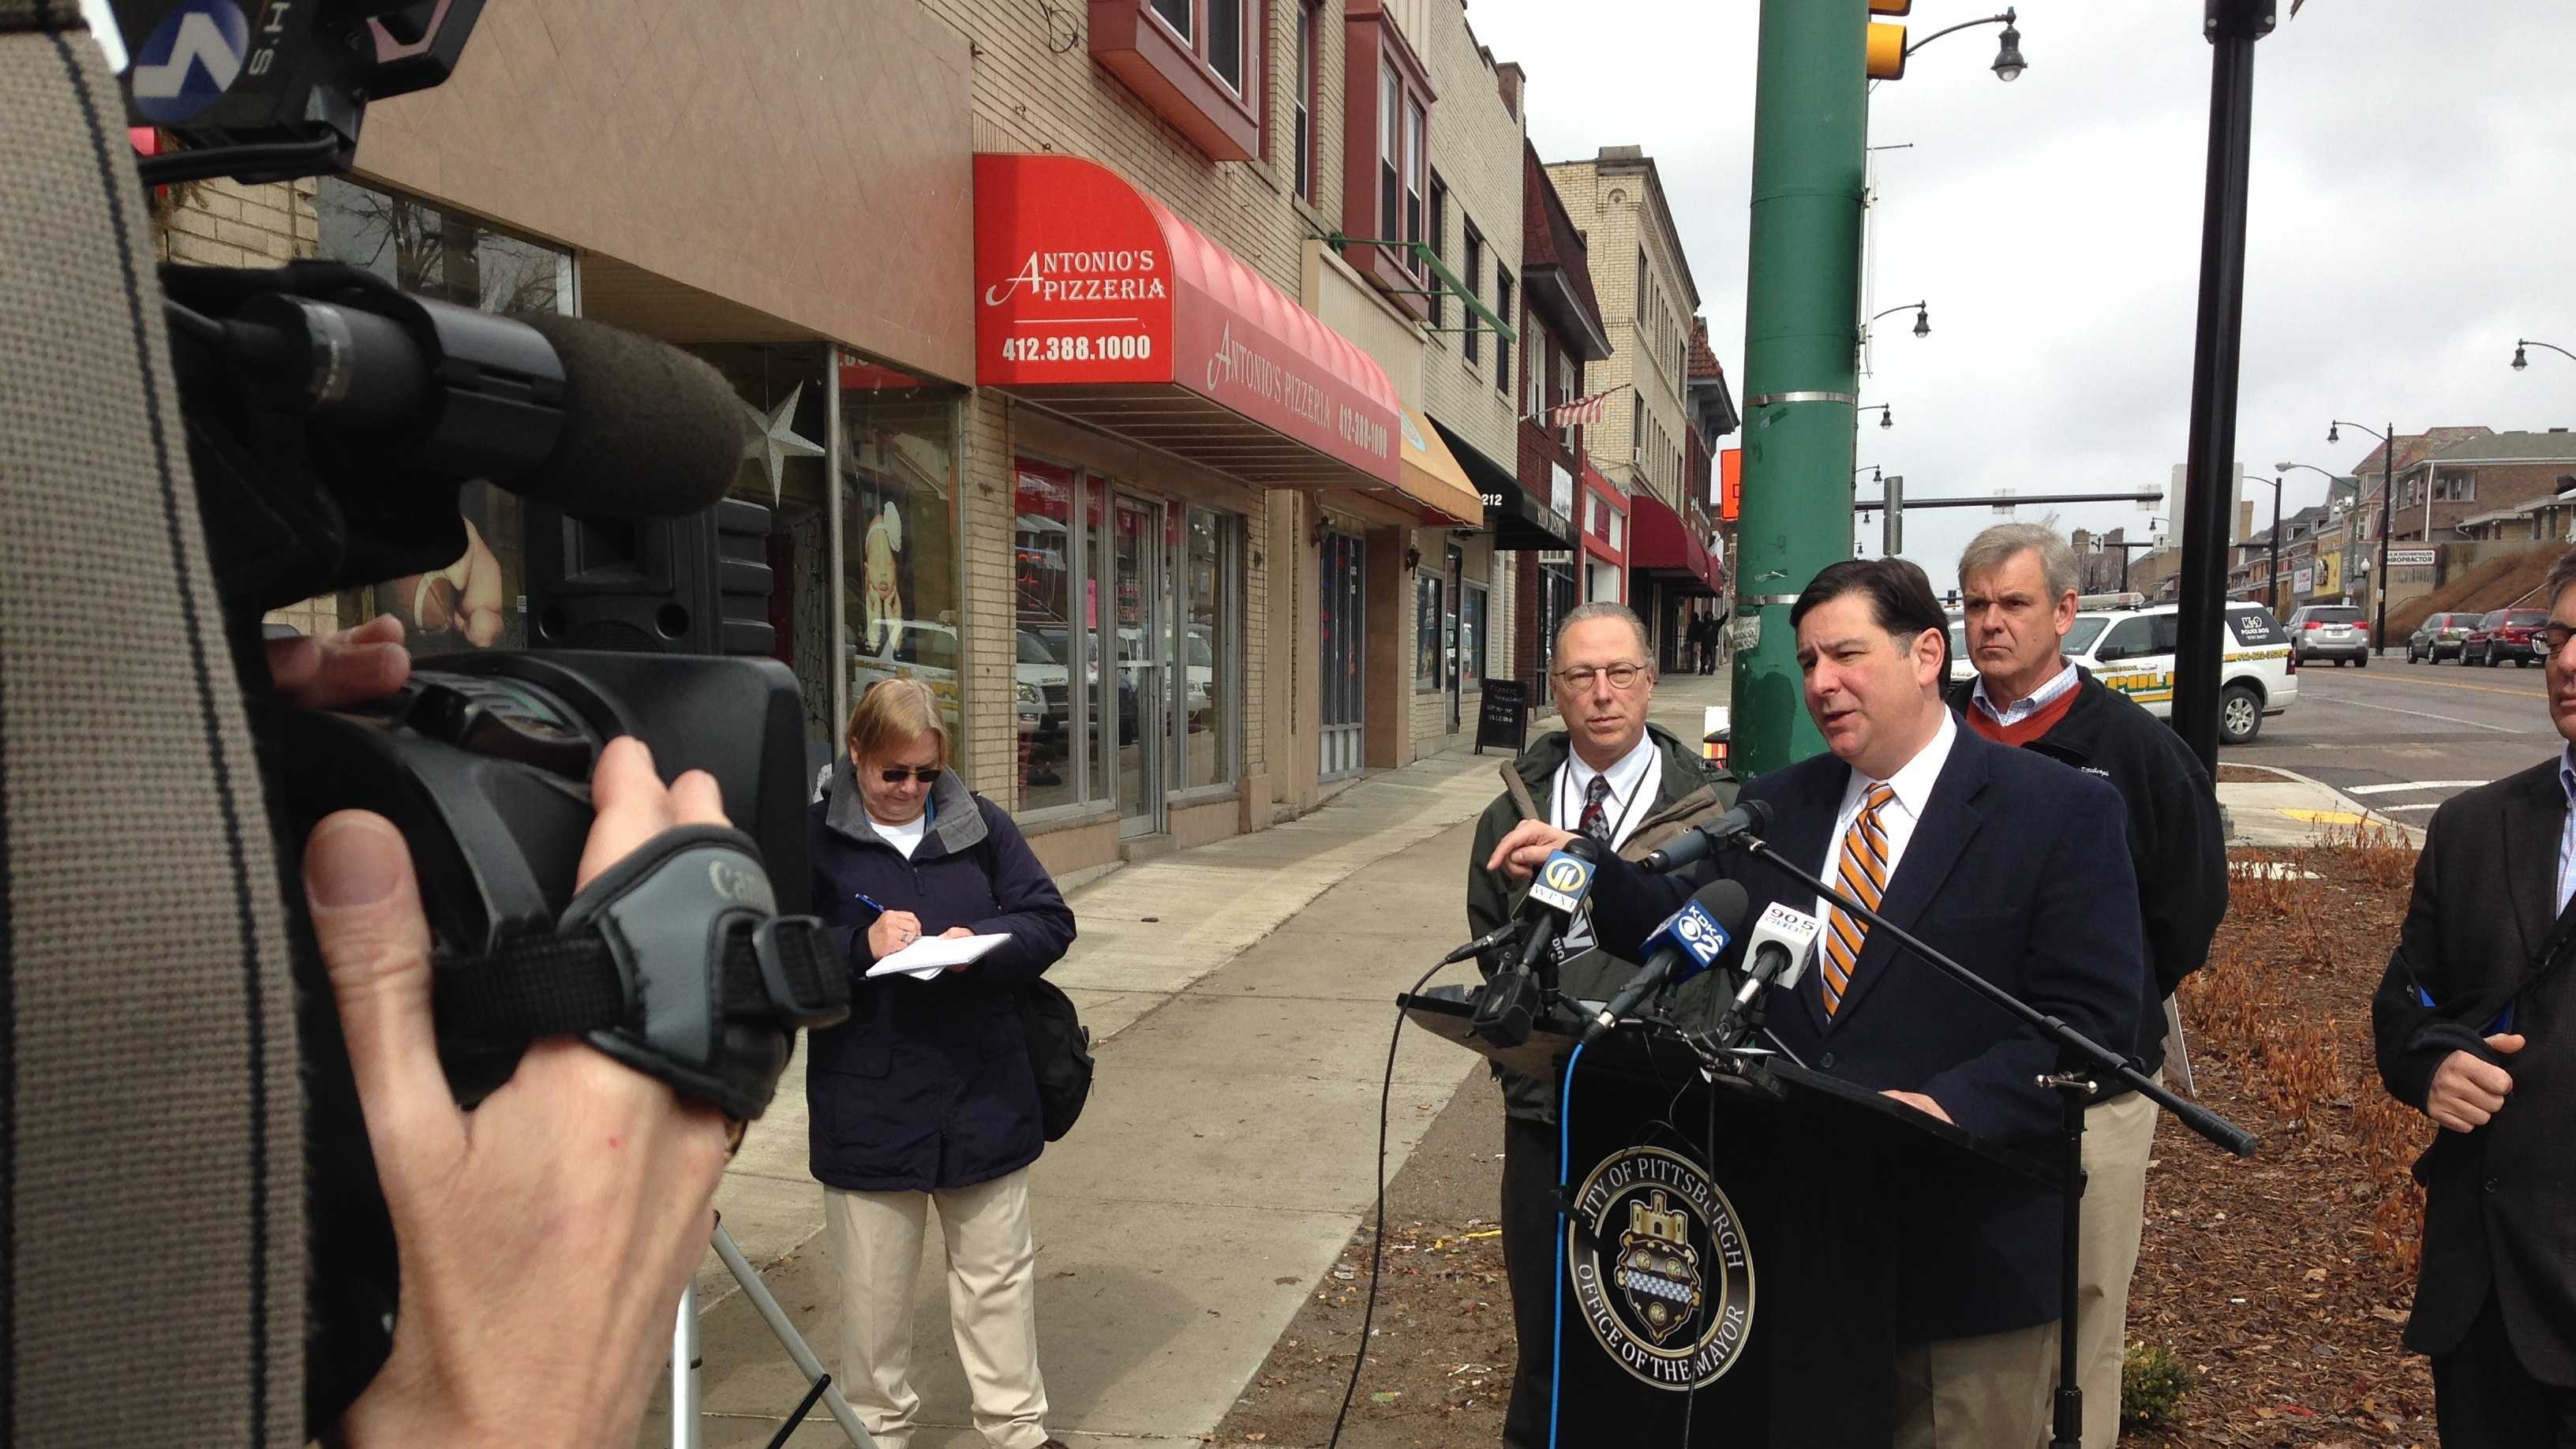 Mayor Bill Peduto held a news conference on Brookline Boulevard to discuss the city's plans for potholes and street paving.